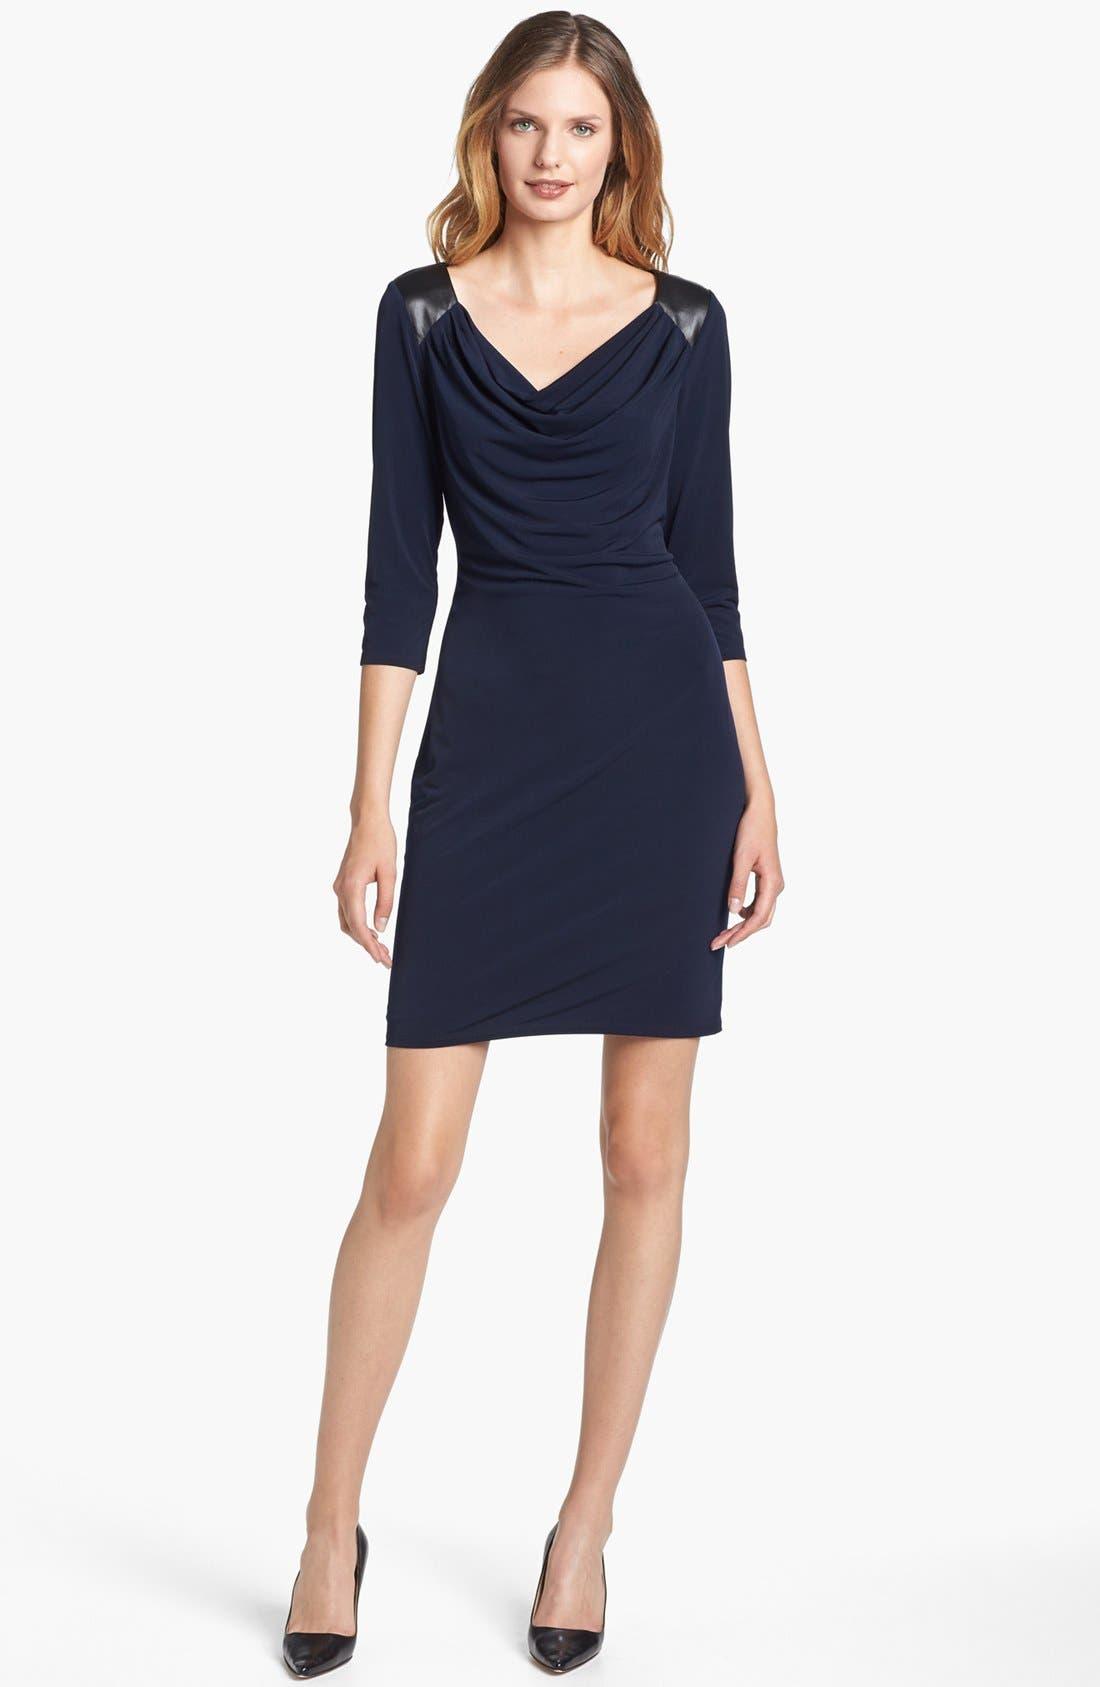 Alternate Image 1 Selected - Calvin Klein Faux Leather Trim Draped Jersey Dress